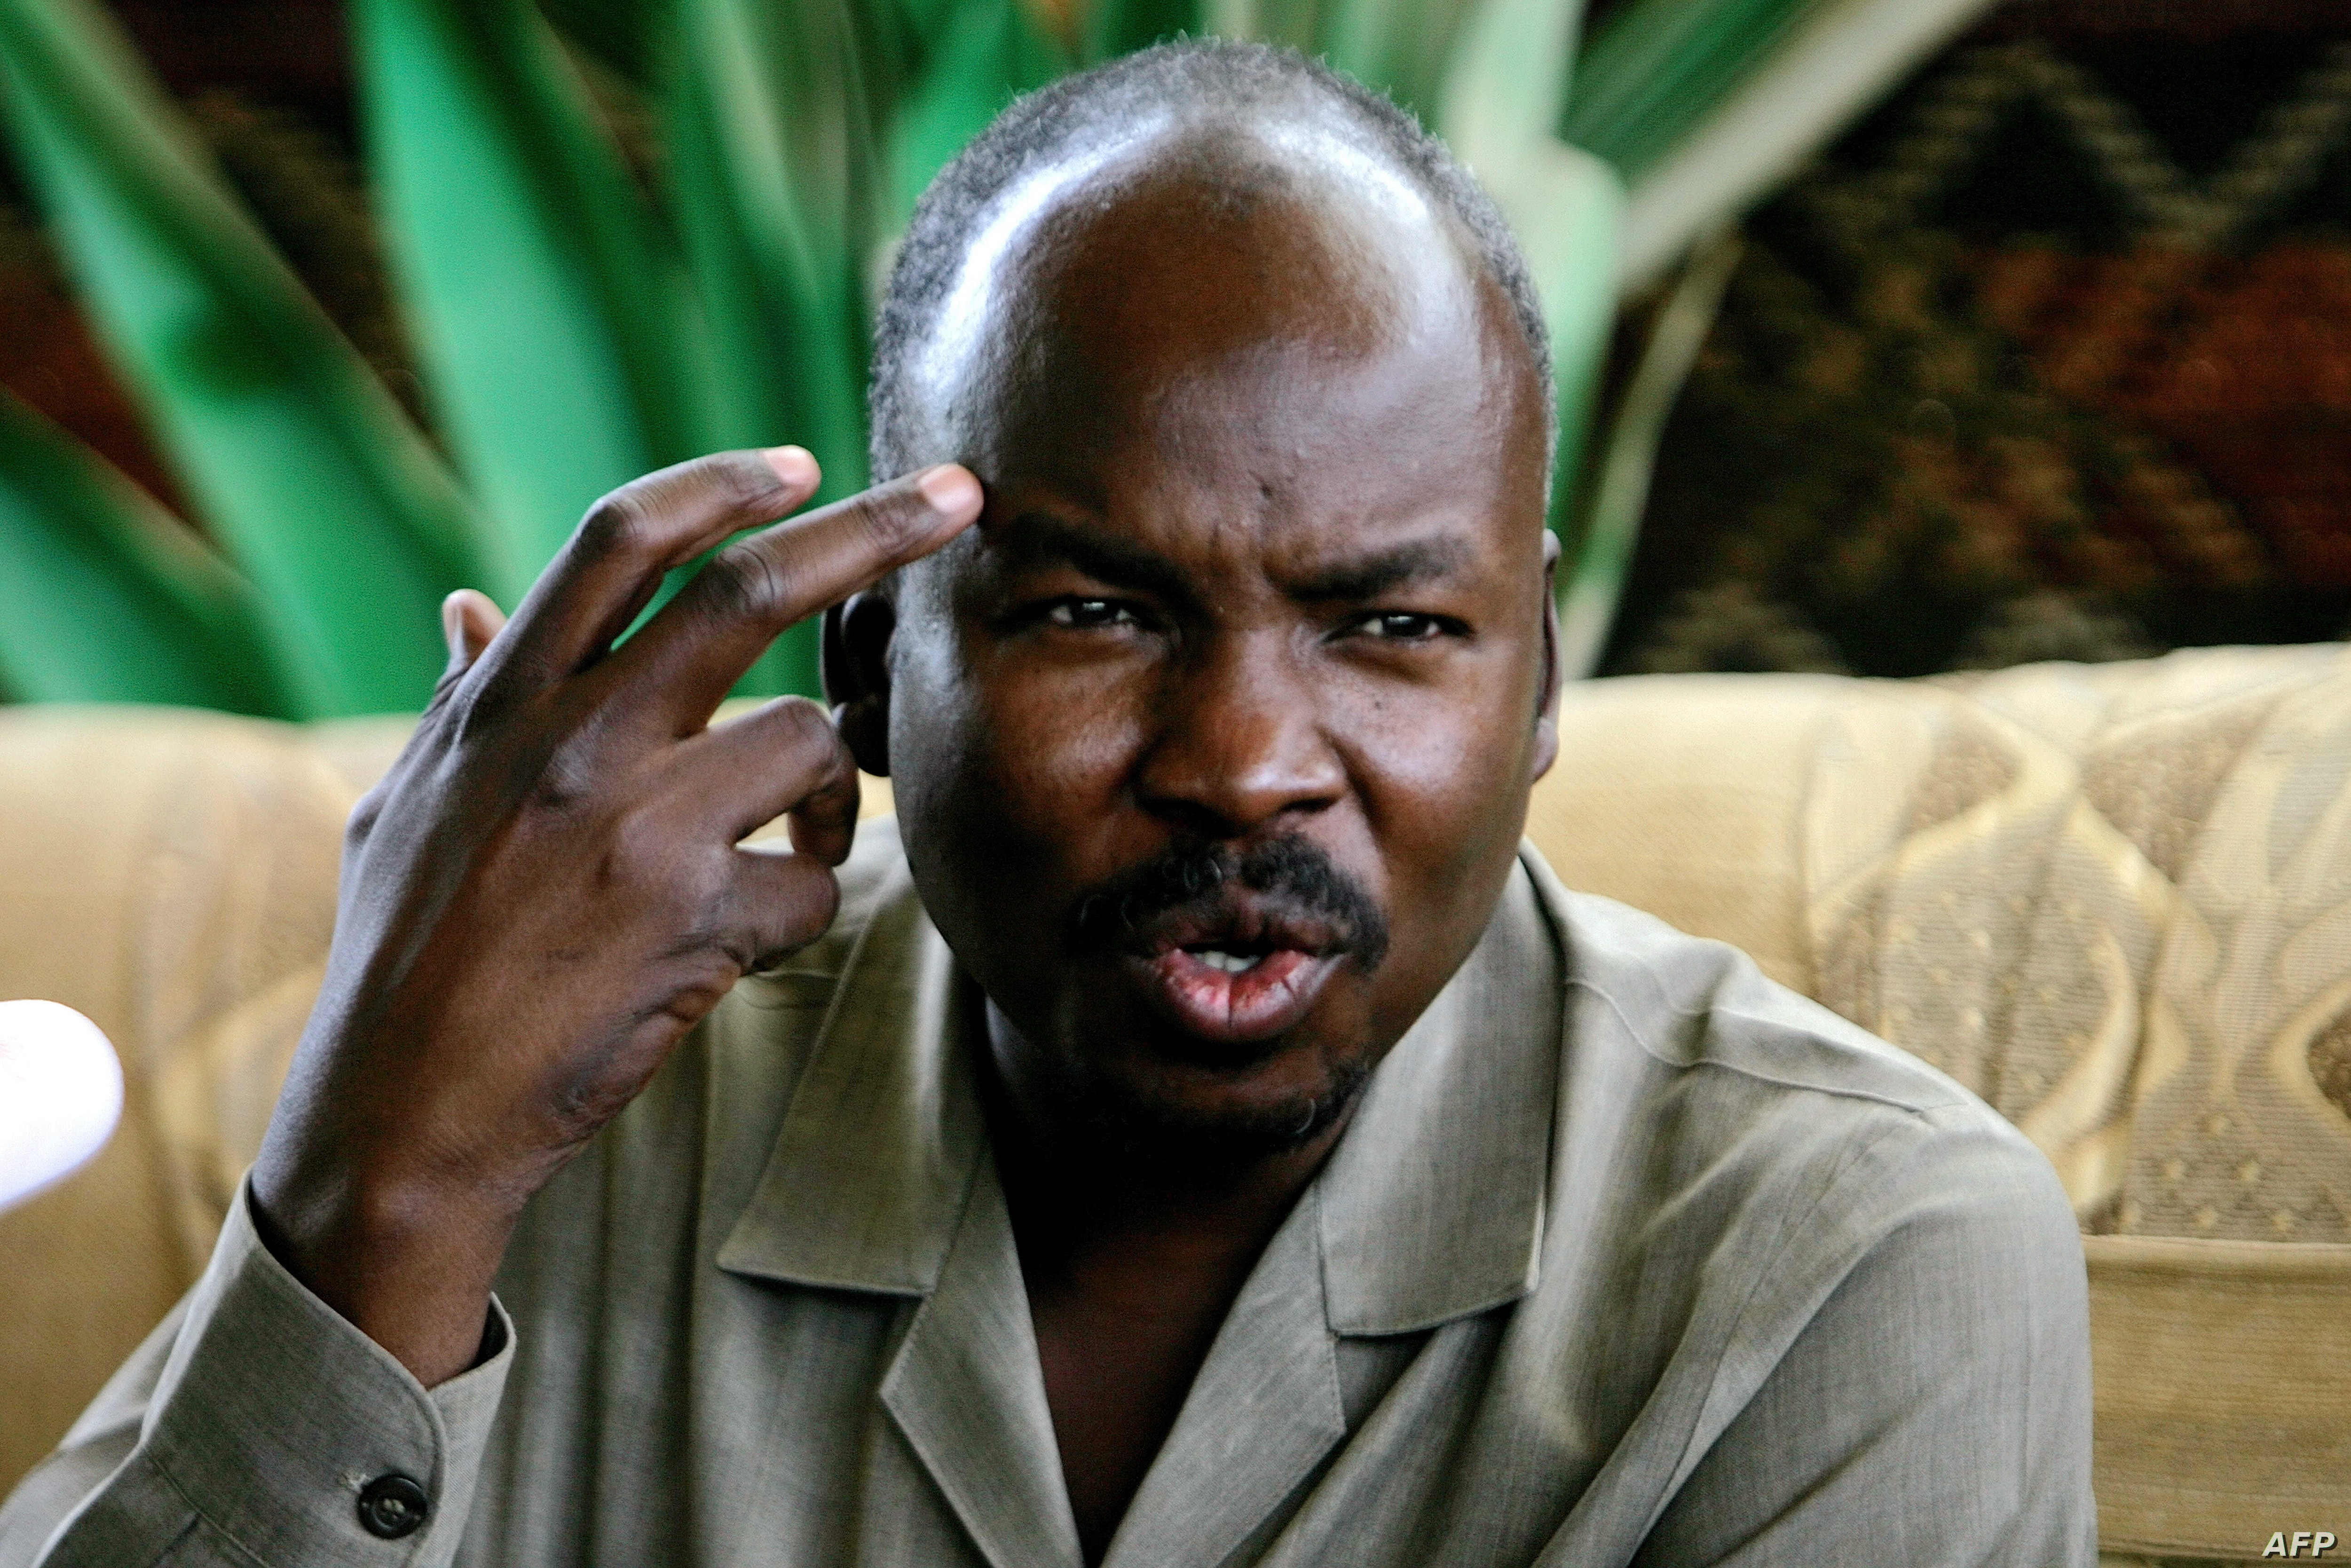 FILE - Ahmed Harun, who then was South Kordofan governor, gestures during a press conference in Talodi, Sudan, April 12, 2012. On April 20, 2019, Harun was one of several leaders of the former ruling National Congress Party who were arrested, a senio...